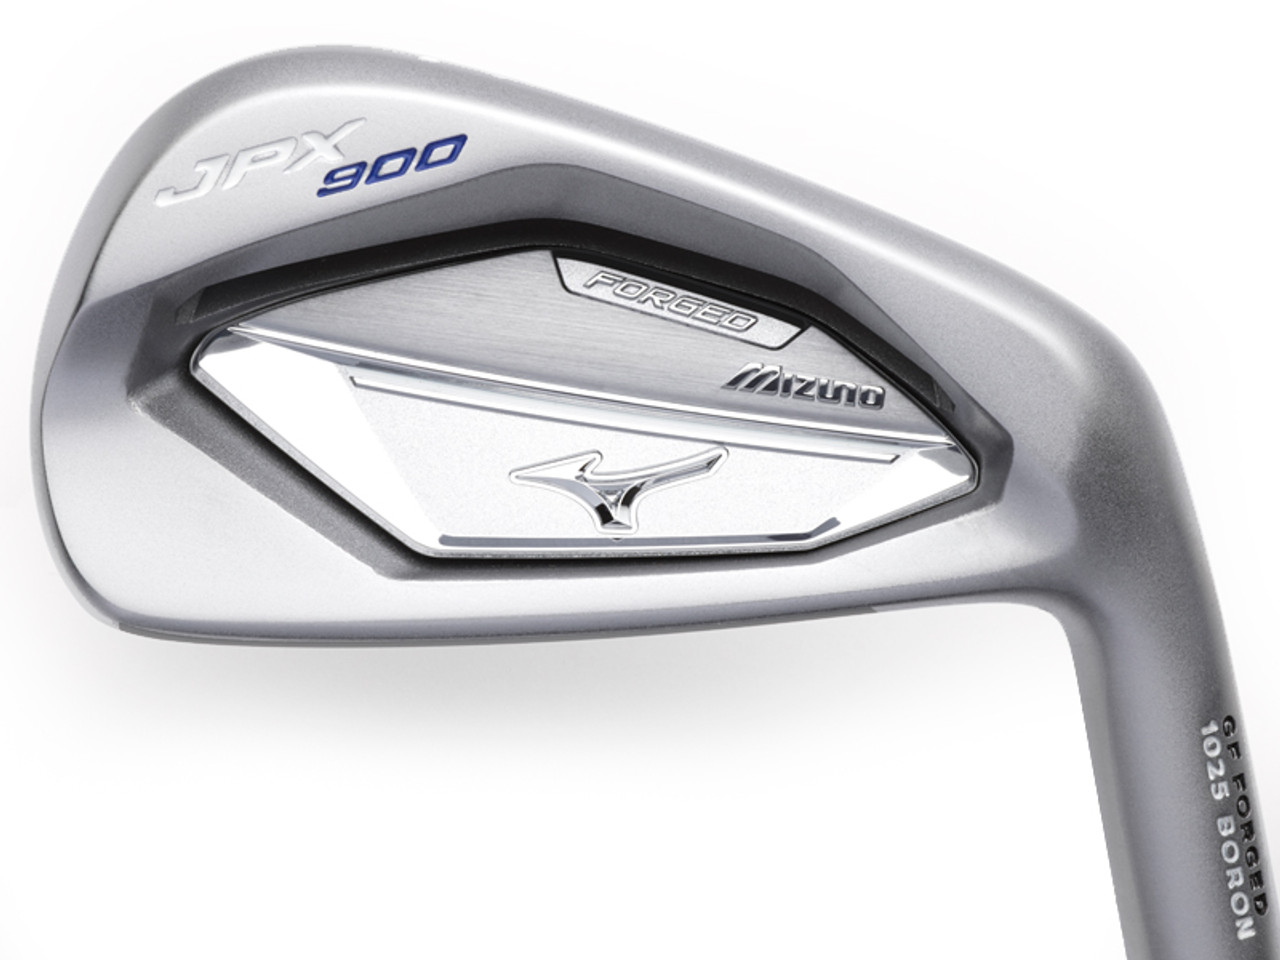 8758c88cc6d4 Mizuno JPX 900 Forged Irons Steel Shaft 4-PW For Sale | GolfBox